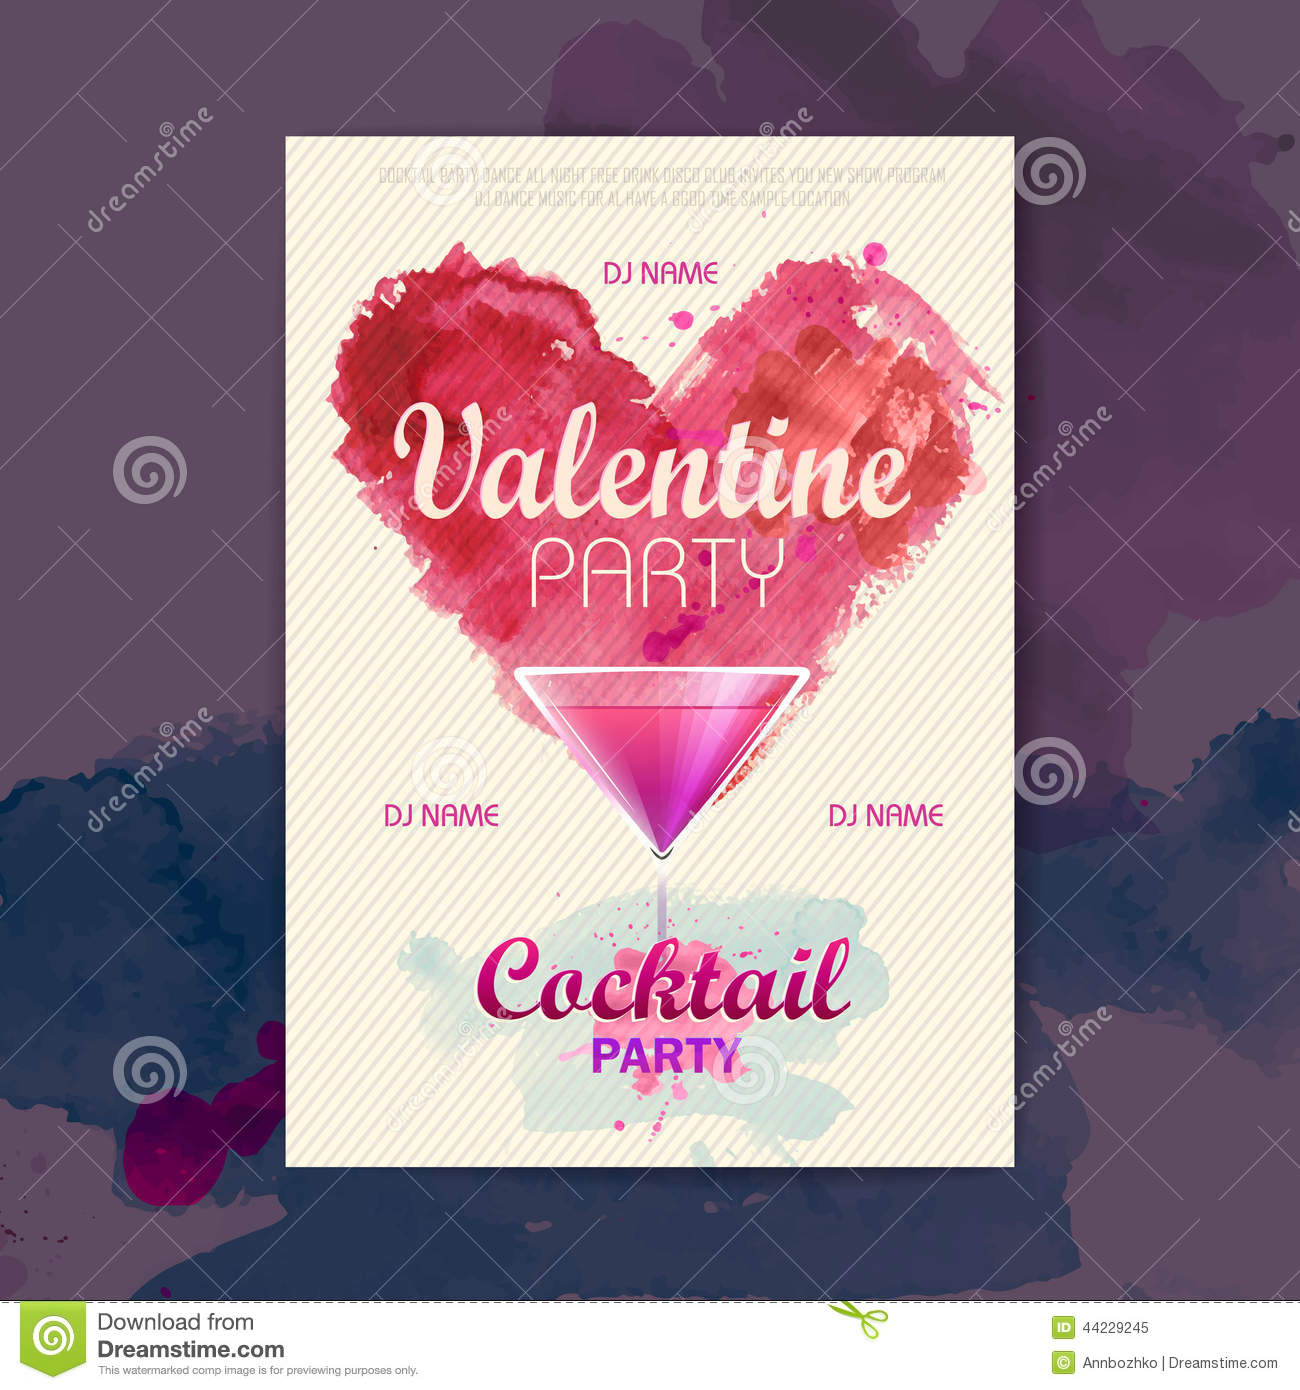 valentine poster valentine background - Valentine Poster